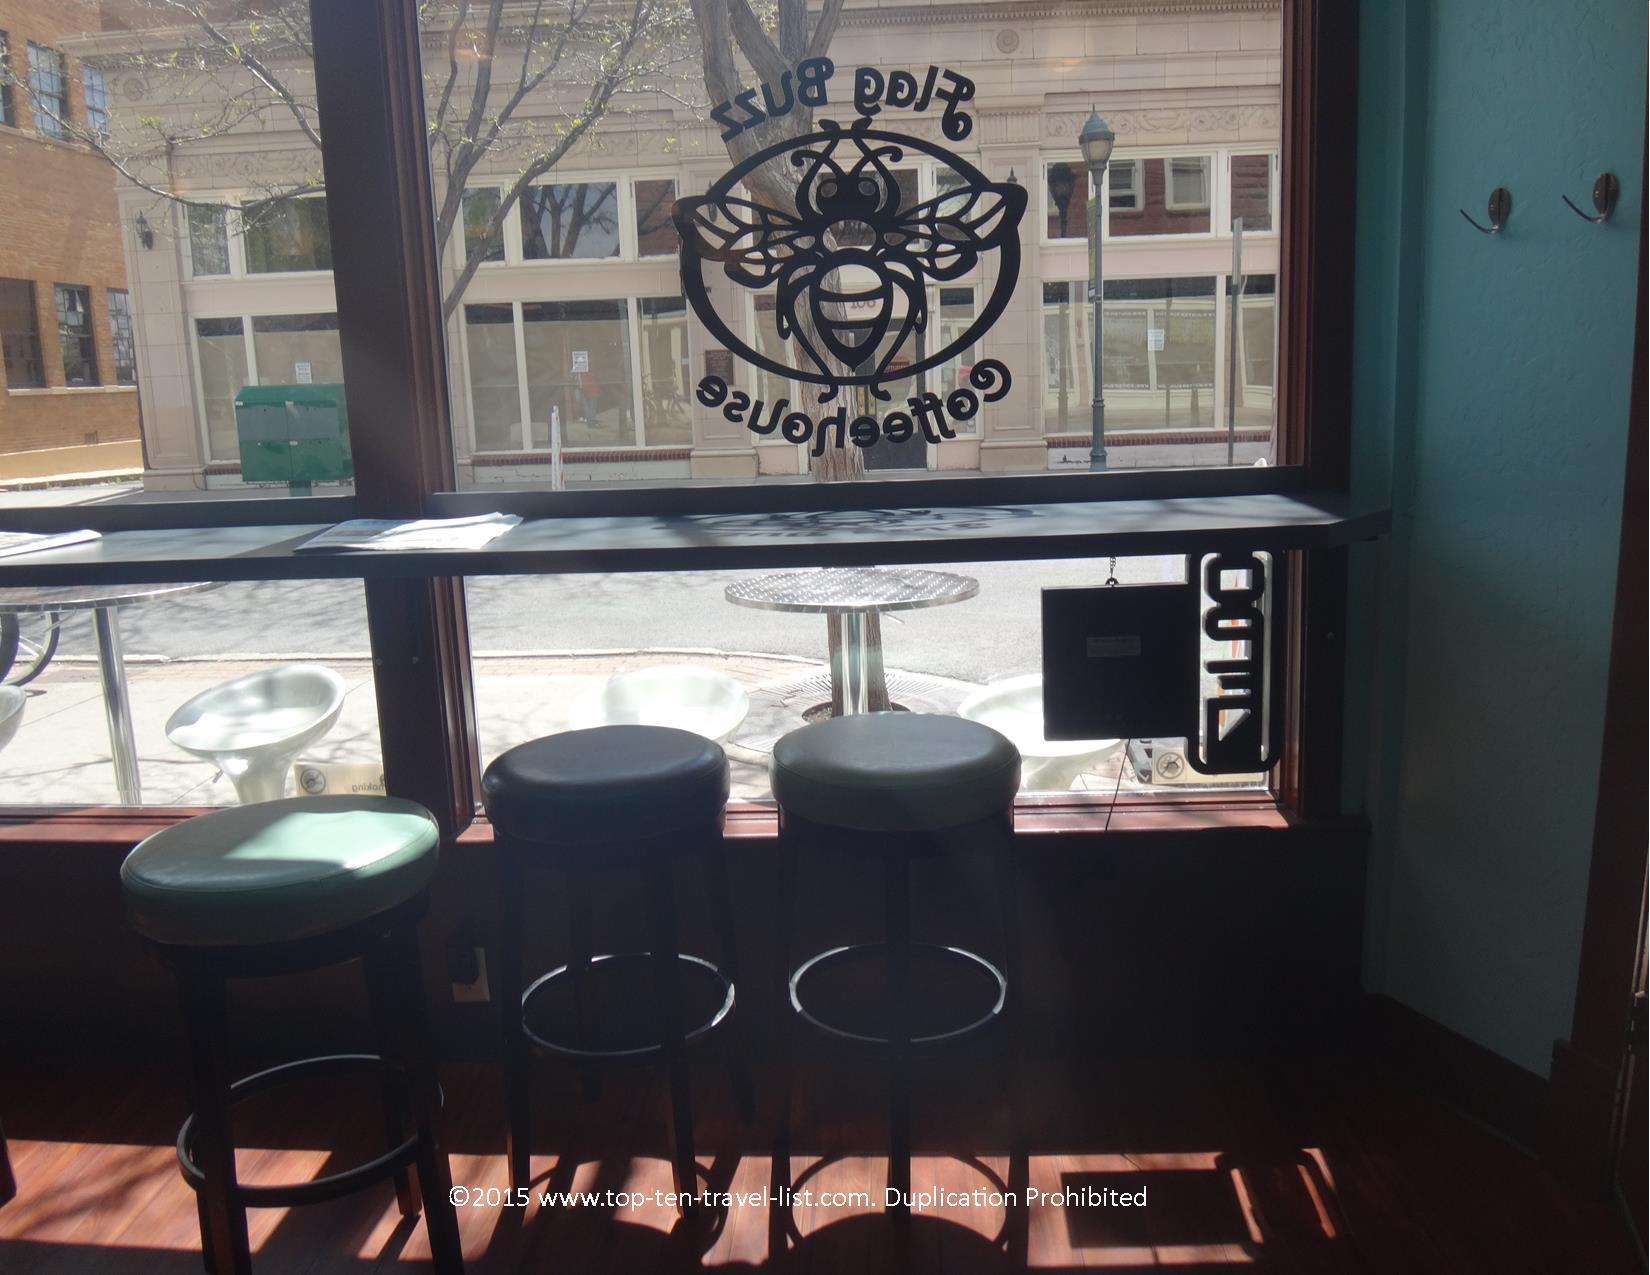 Flag Buzz is the perfect spot in town to people watch and enjoy a nice espresso drink.